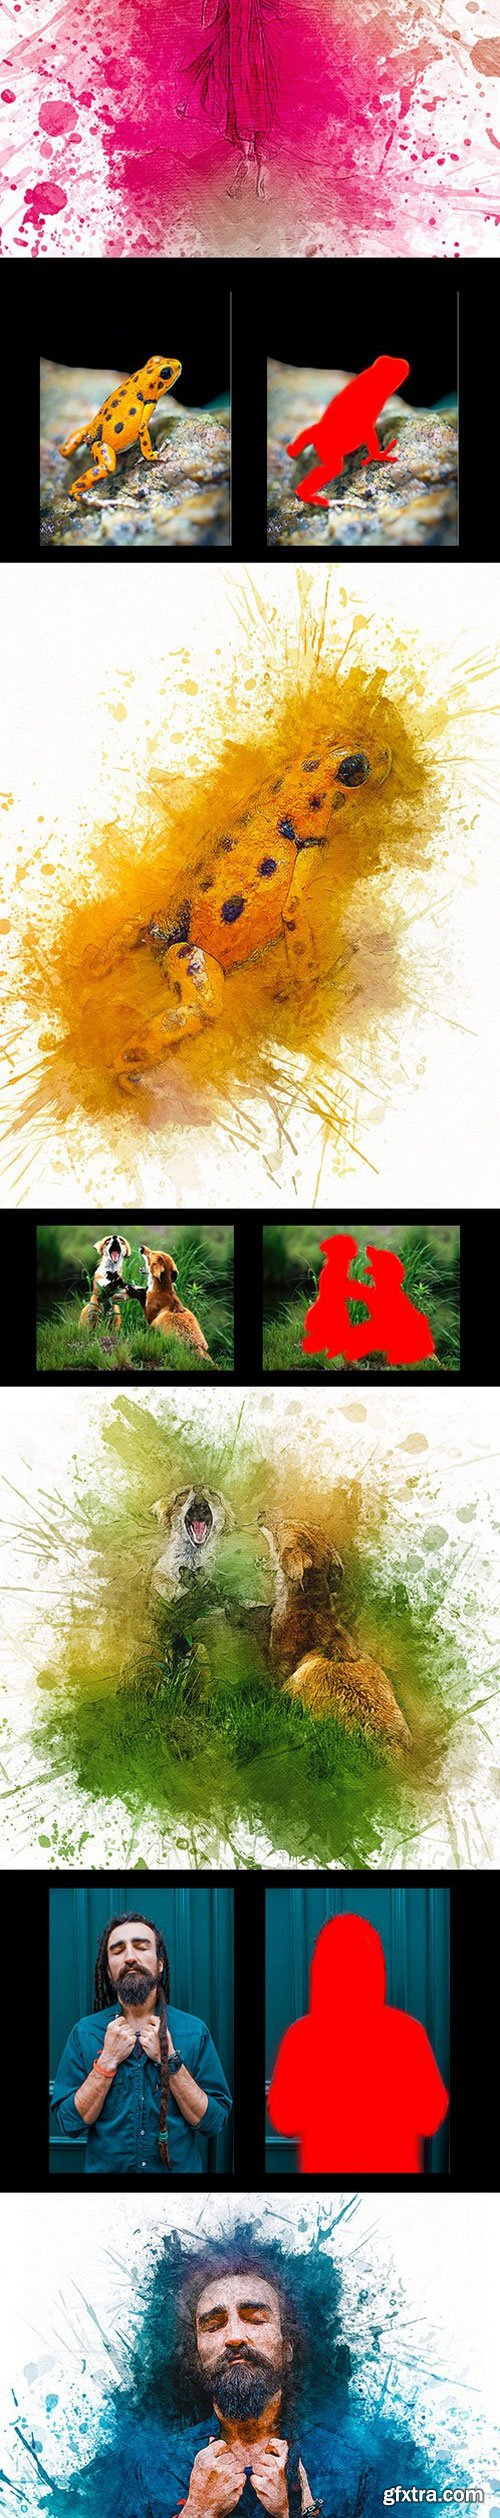 Graphicriver - Abstract Ink Painting 21714322